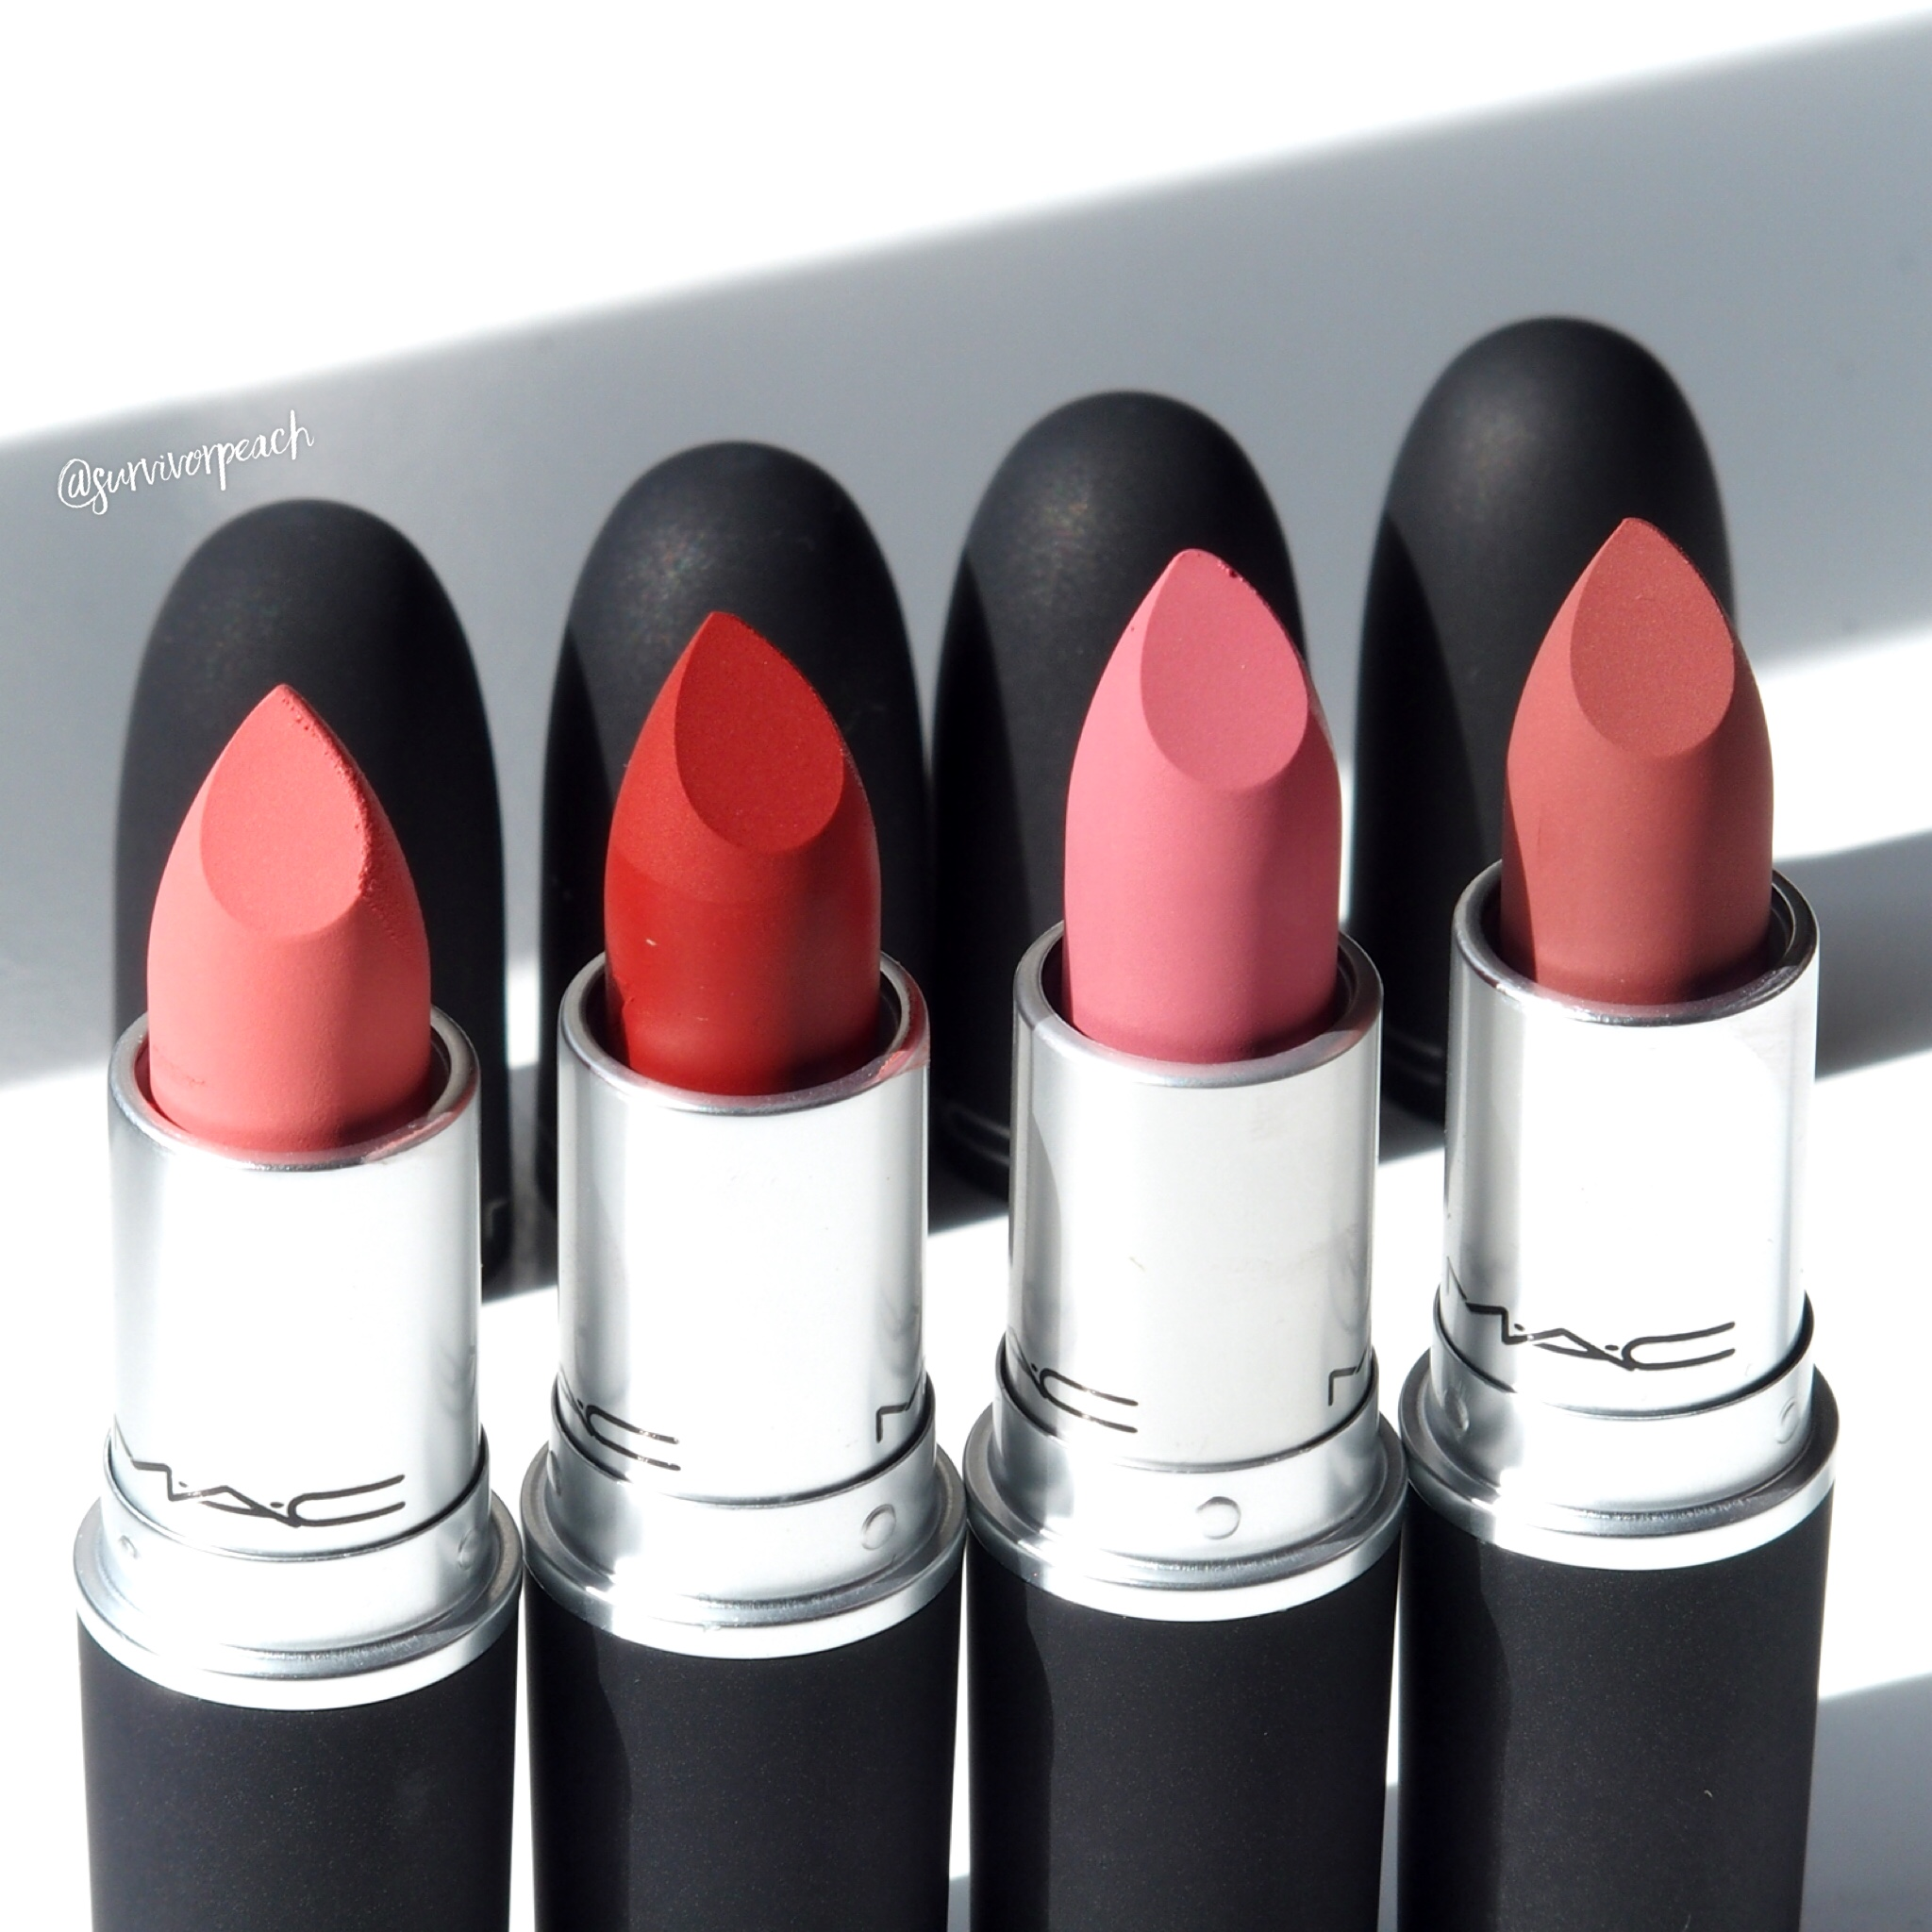 Mac Powder KISS Lipsticks - Scattered Petals, Devoted to Chlli, Sultry Move, Sultriness